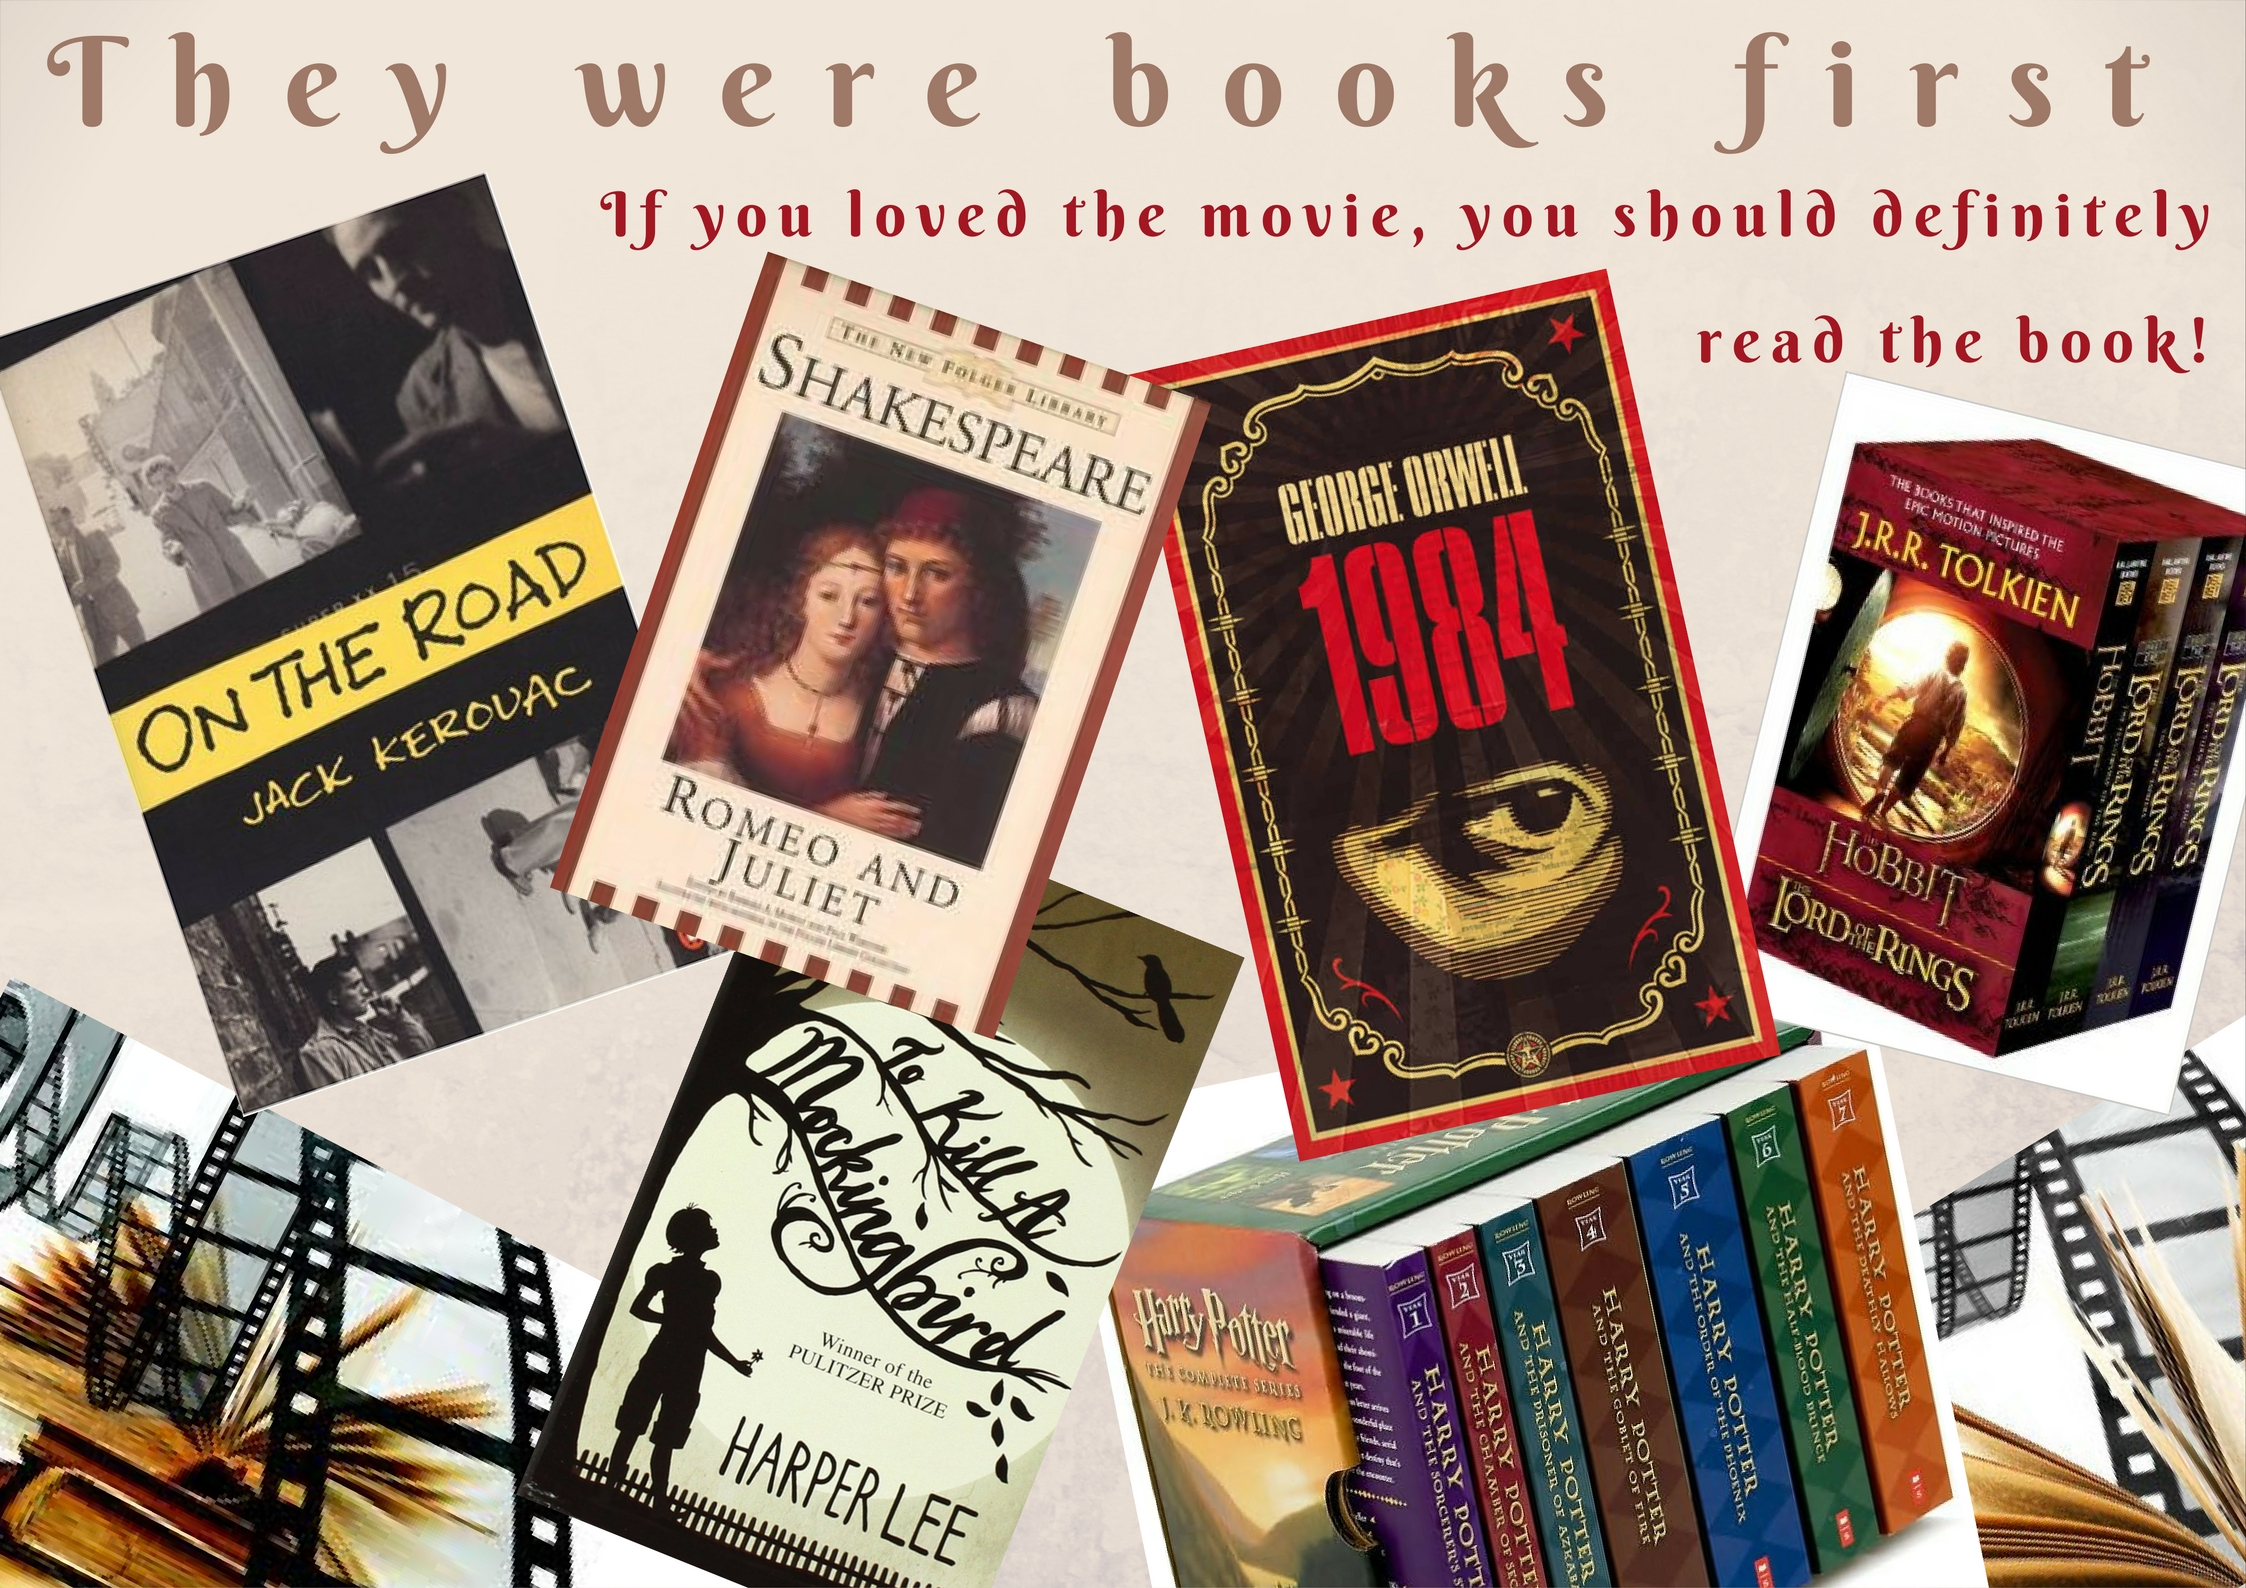 They Were Books First